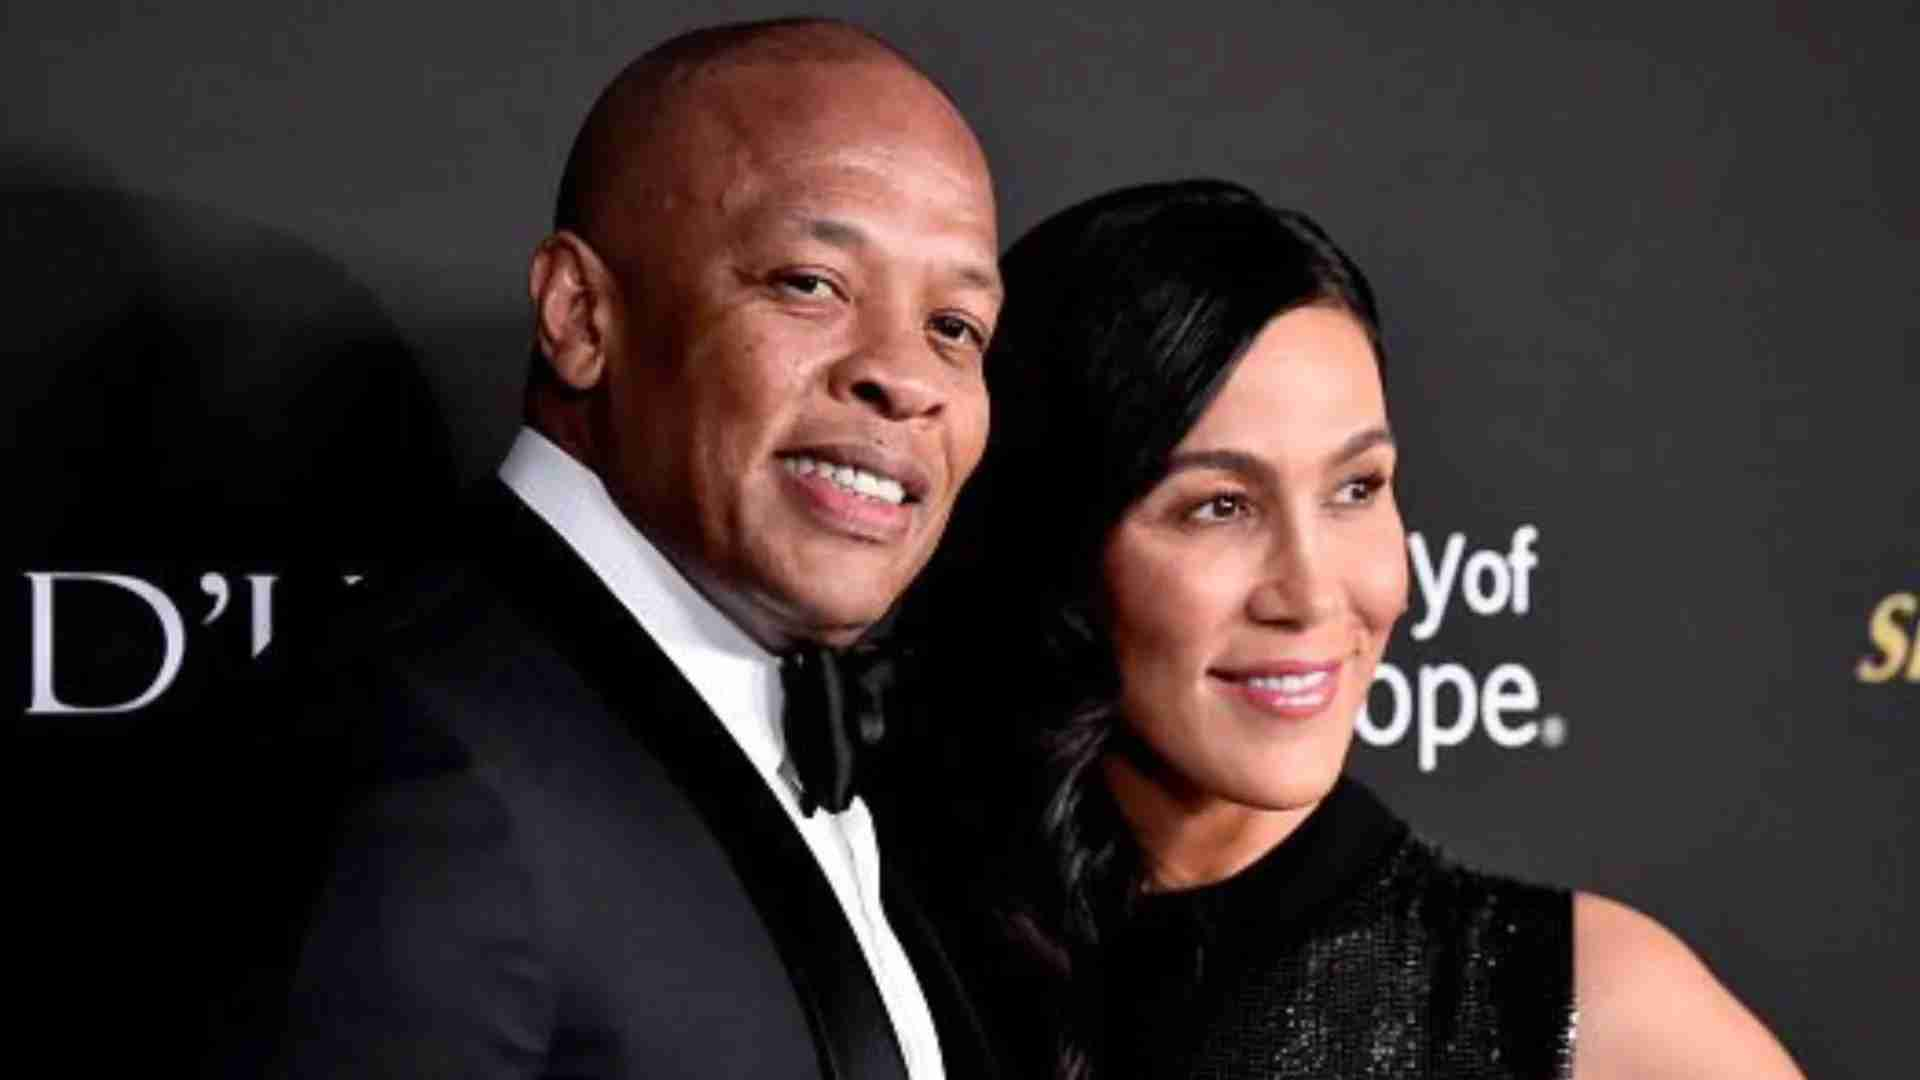 Dr Dre S Wife Files For Divorce After 24 Years Of Marriage